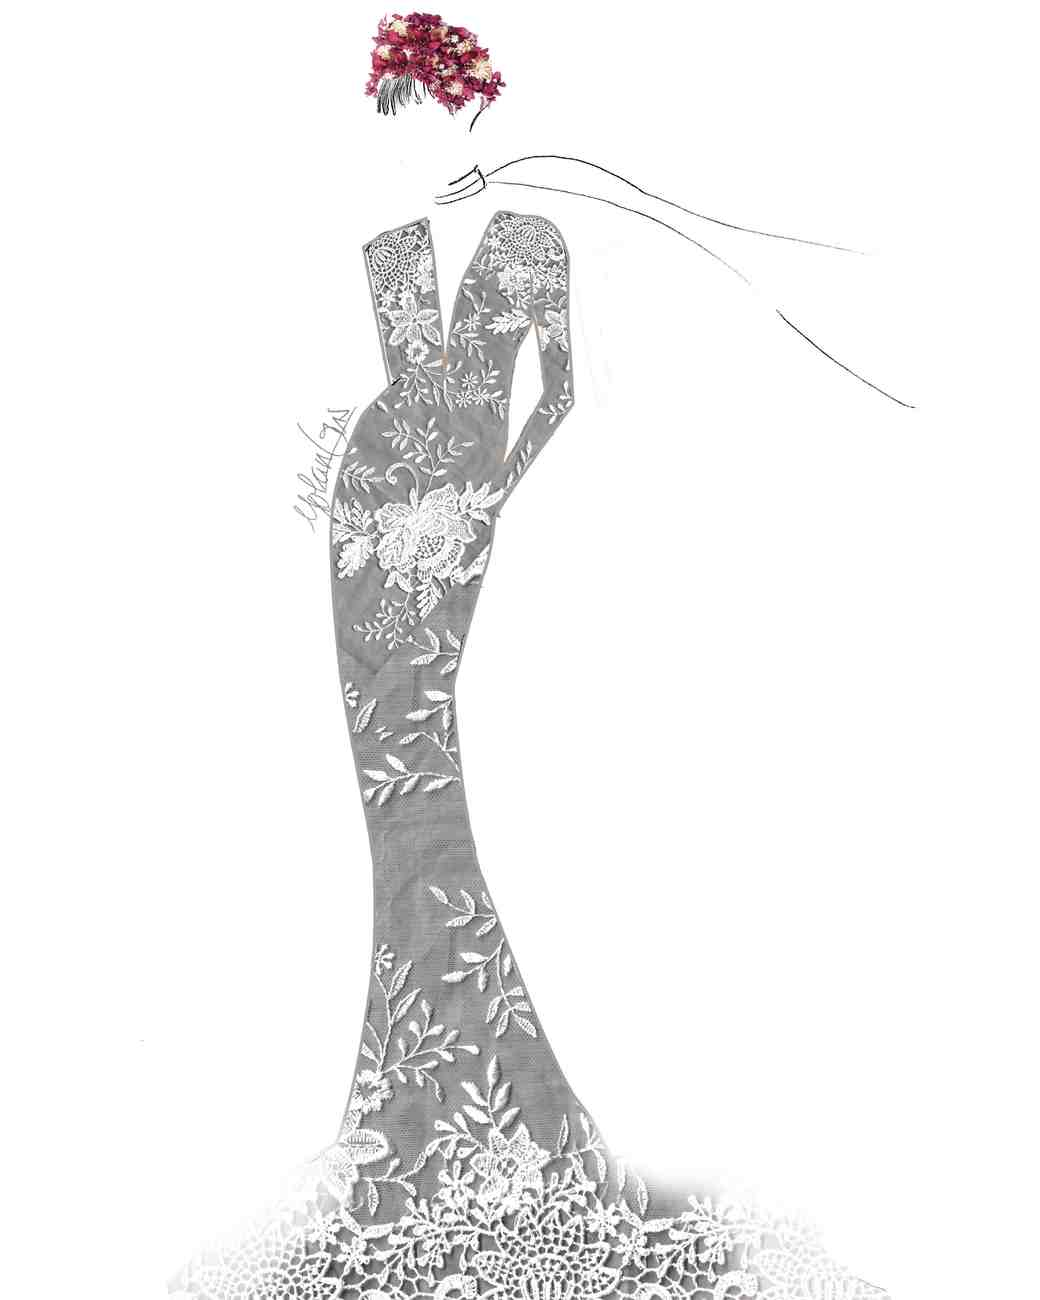 yolancris-fall-2017-exclusive-wedding-dress-sketch-0916.jpg